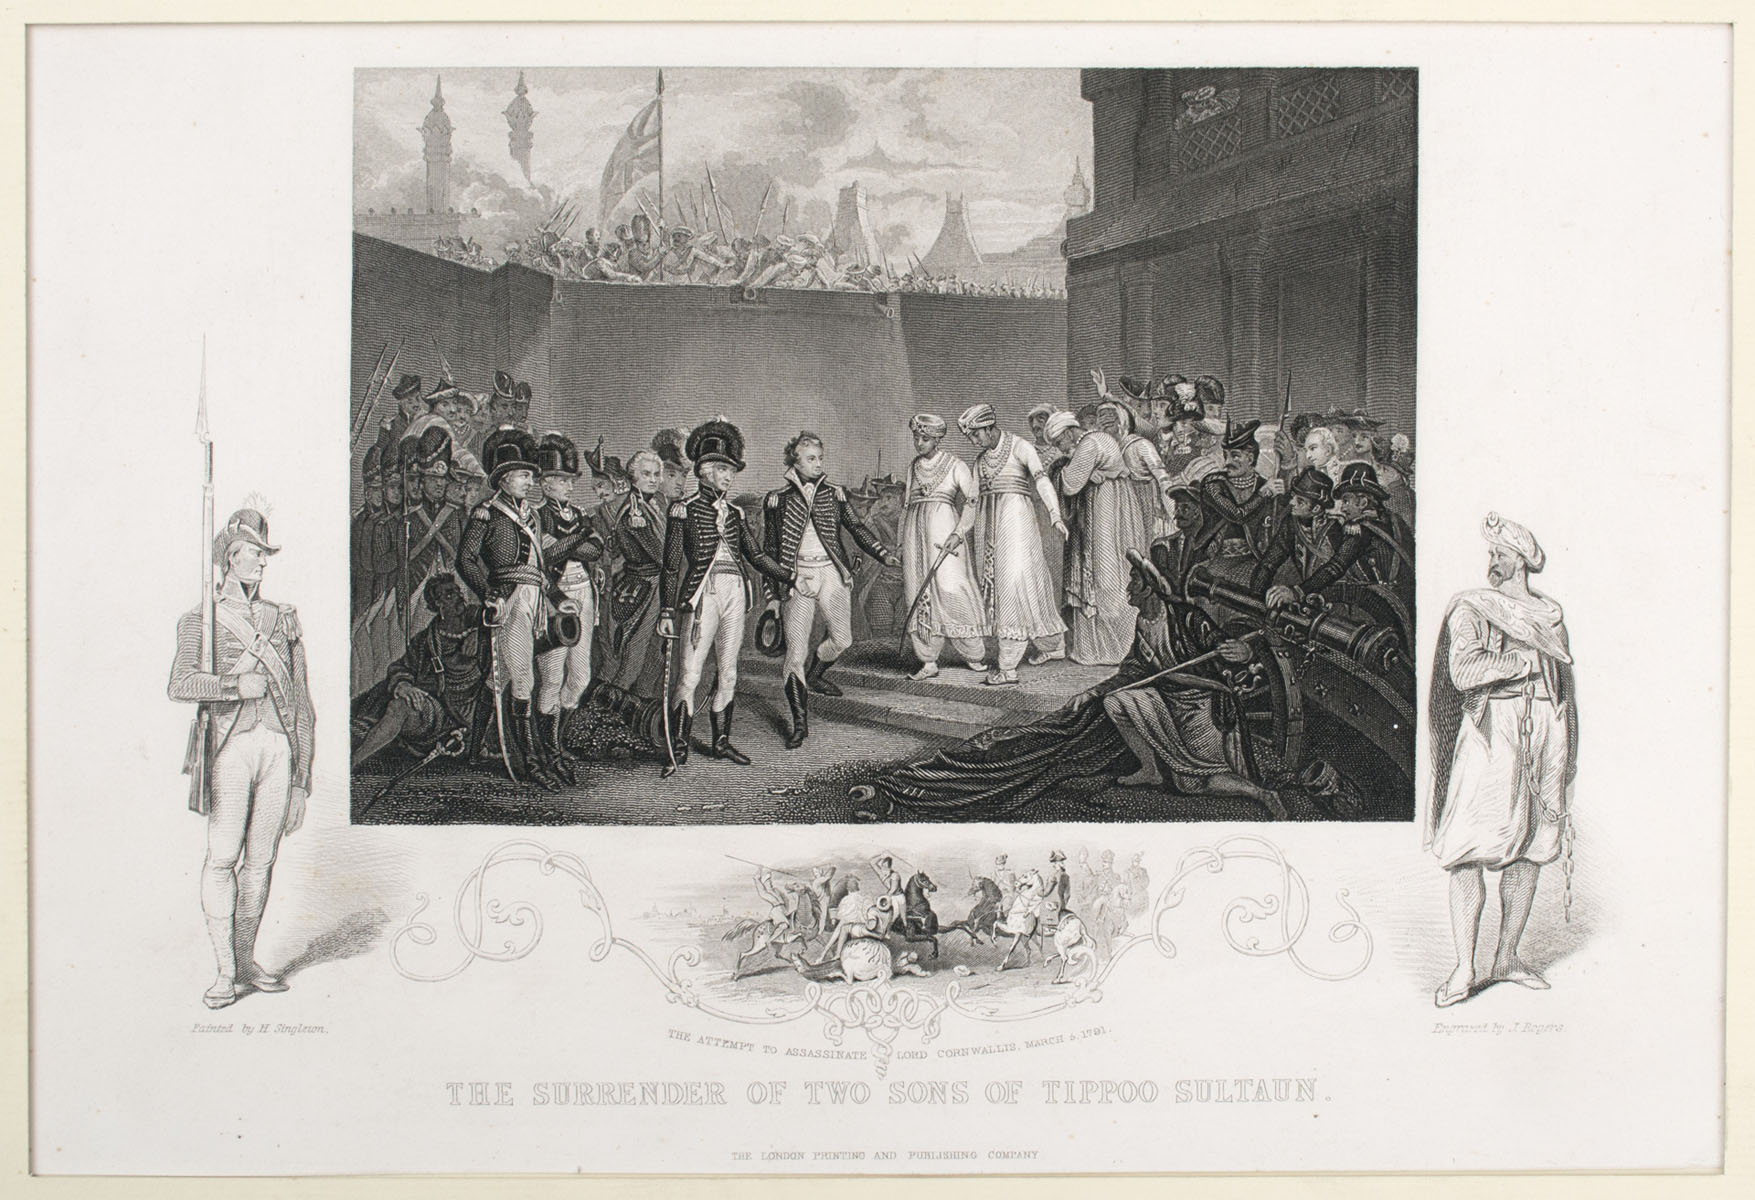 THE SURRENDER OF THE TWO SONS OF TIPOO SULTAUN